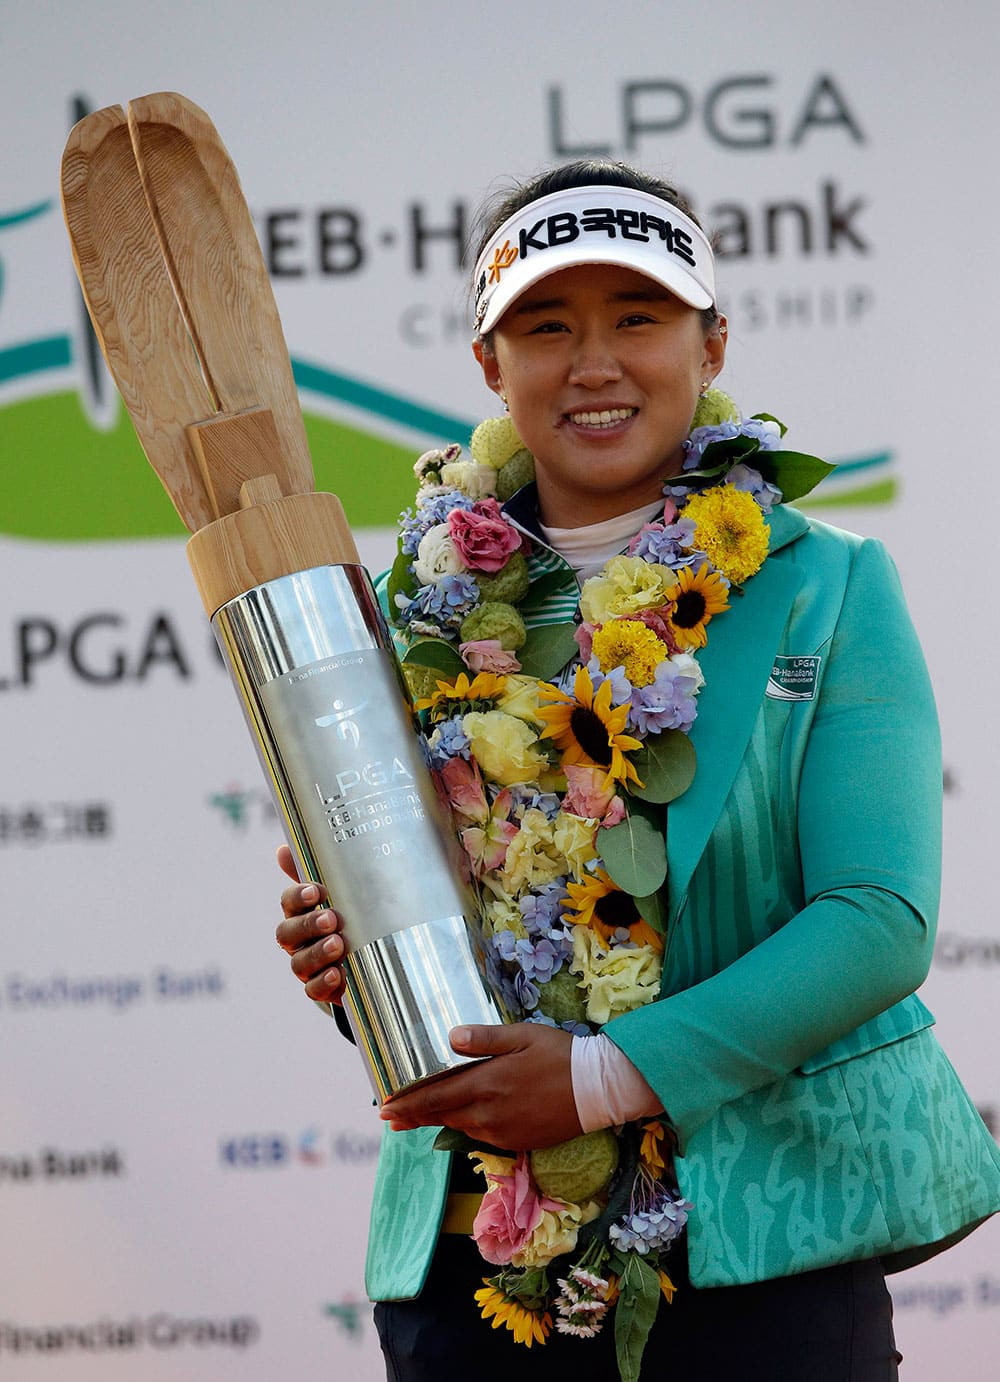 Amy Yang of South Korea poses with the trophy for the media after winning the KEB Hana Bank Championship golf tournament at Sky72 Golf Club in Incheon, west of Seoul, South Korea.